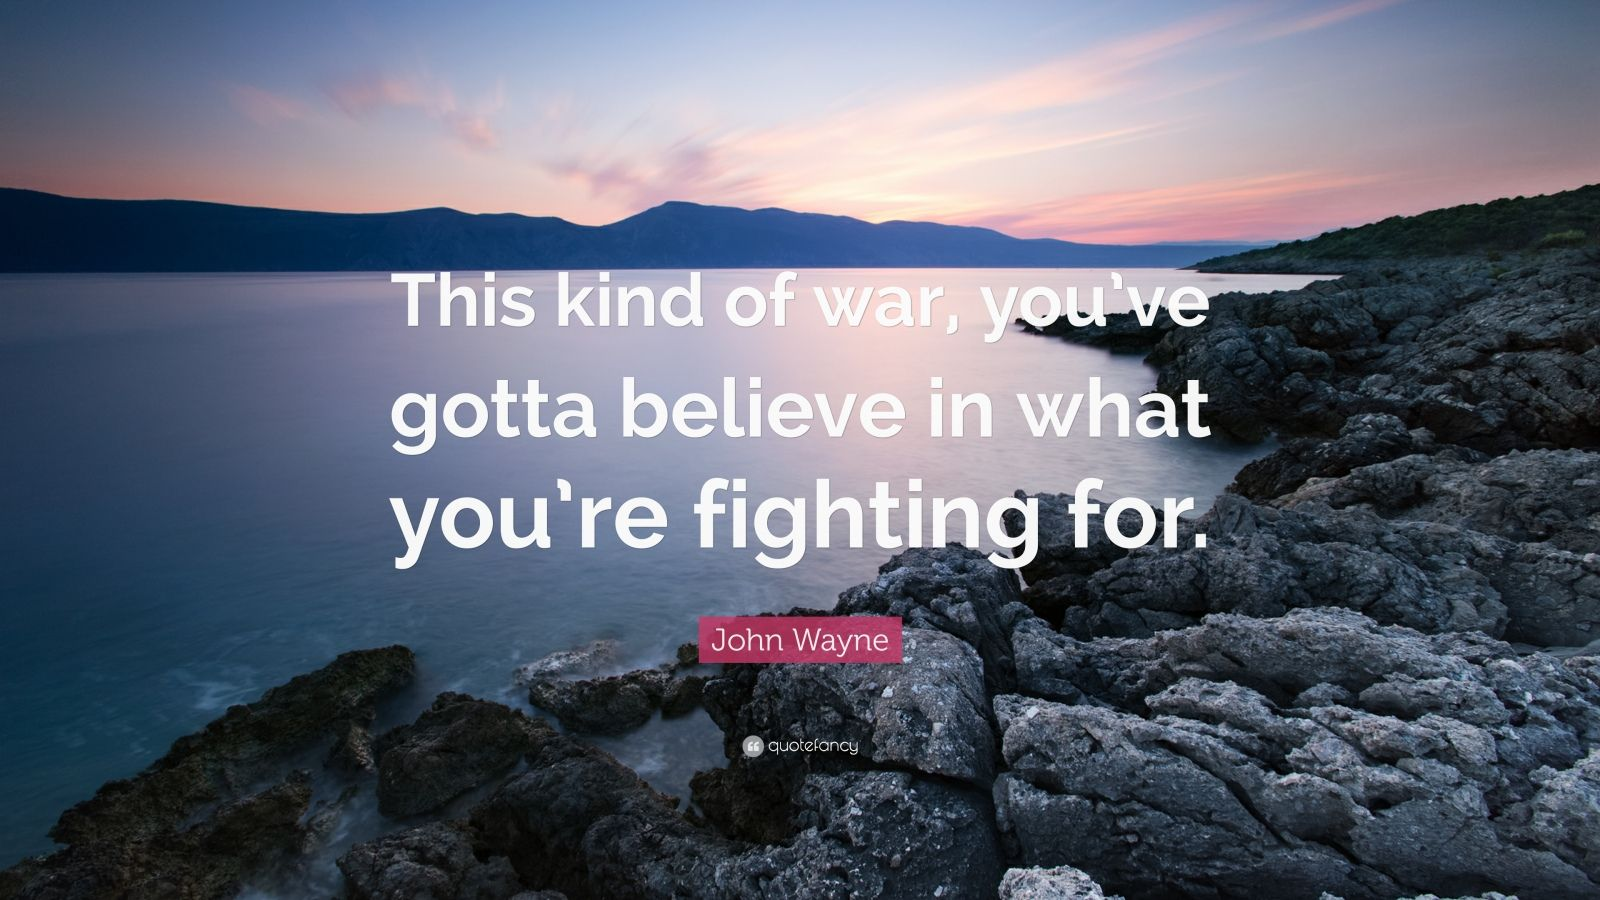 """John Wayne Quote: """"This kind of war, you've gotta believe in what you're fighting for."""""""